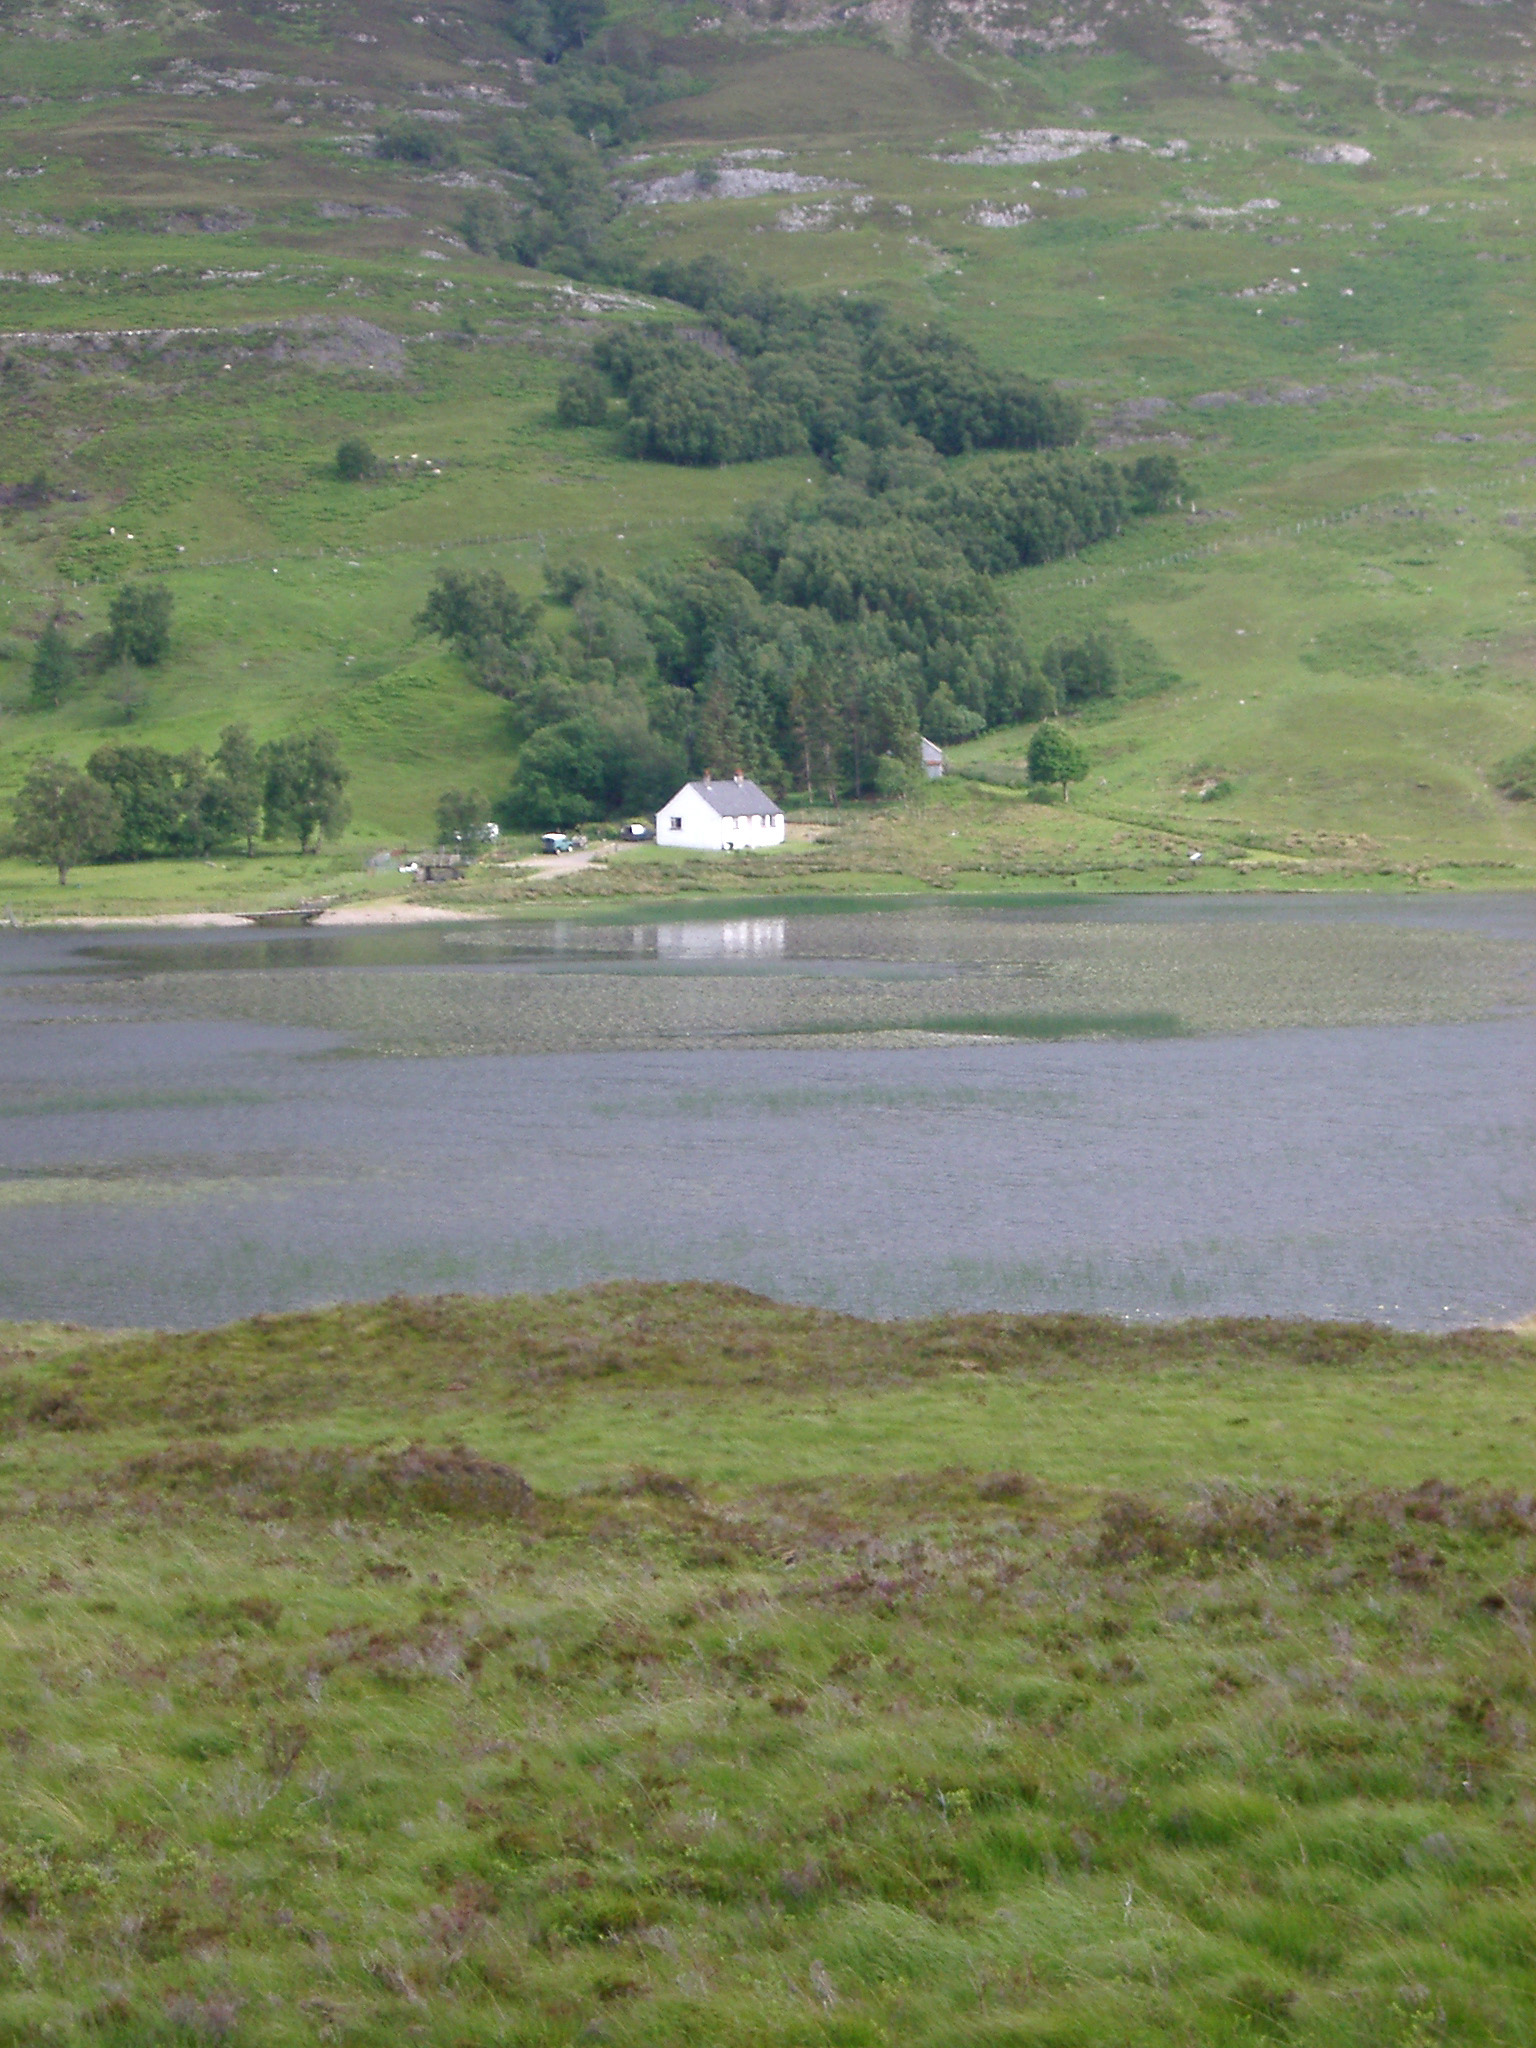 Distant view of a remote whitewashed house on the shores of loch in Scotland in a lush tranquil landscape